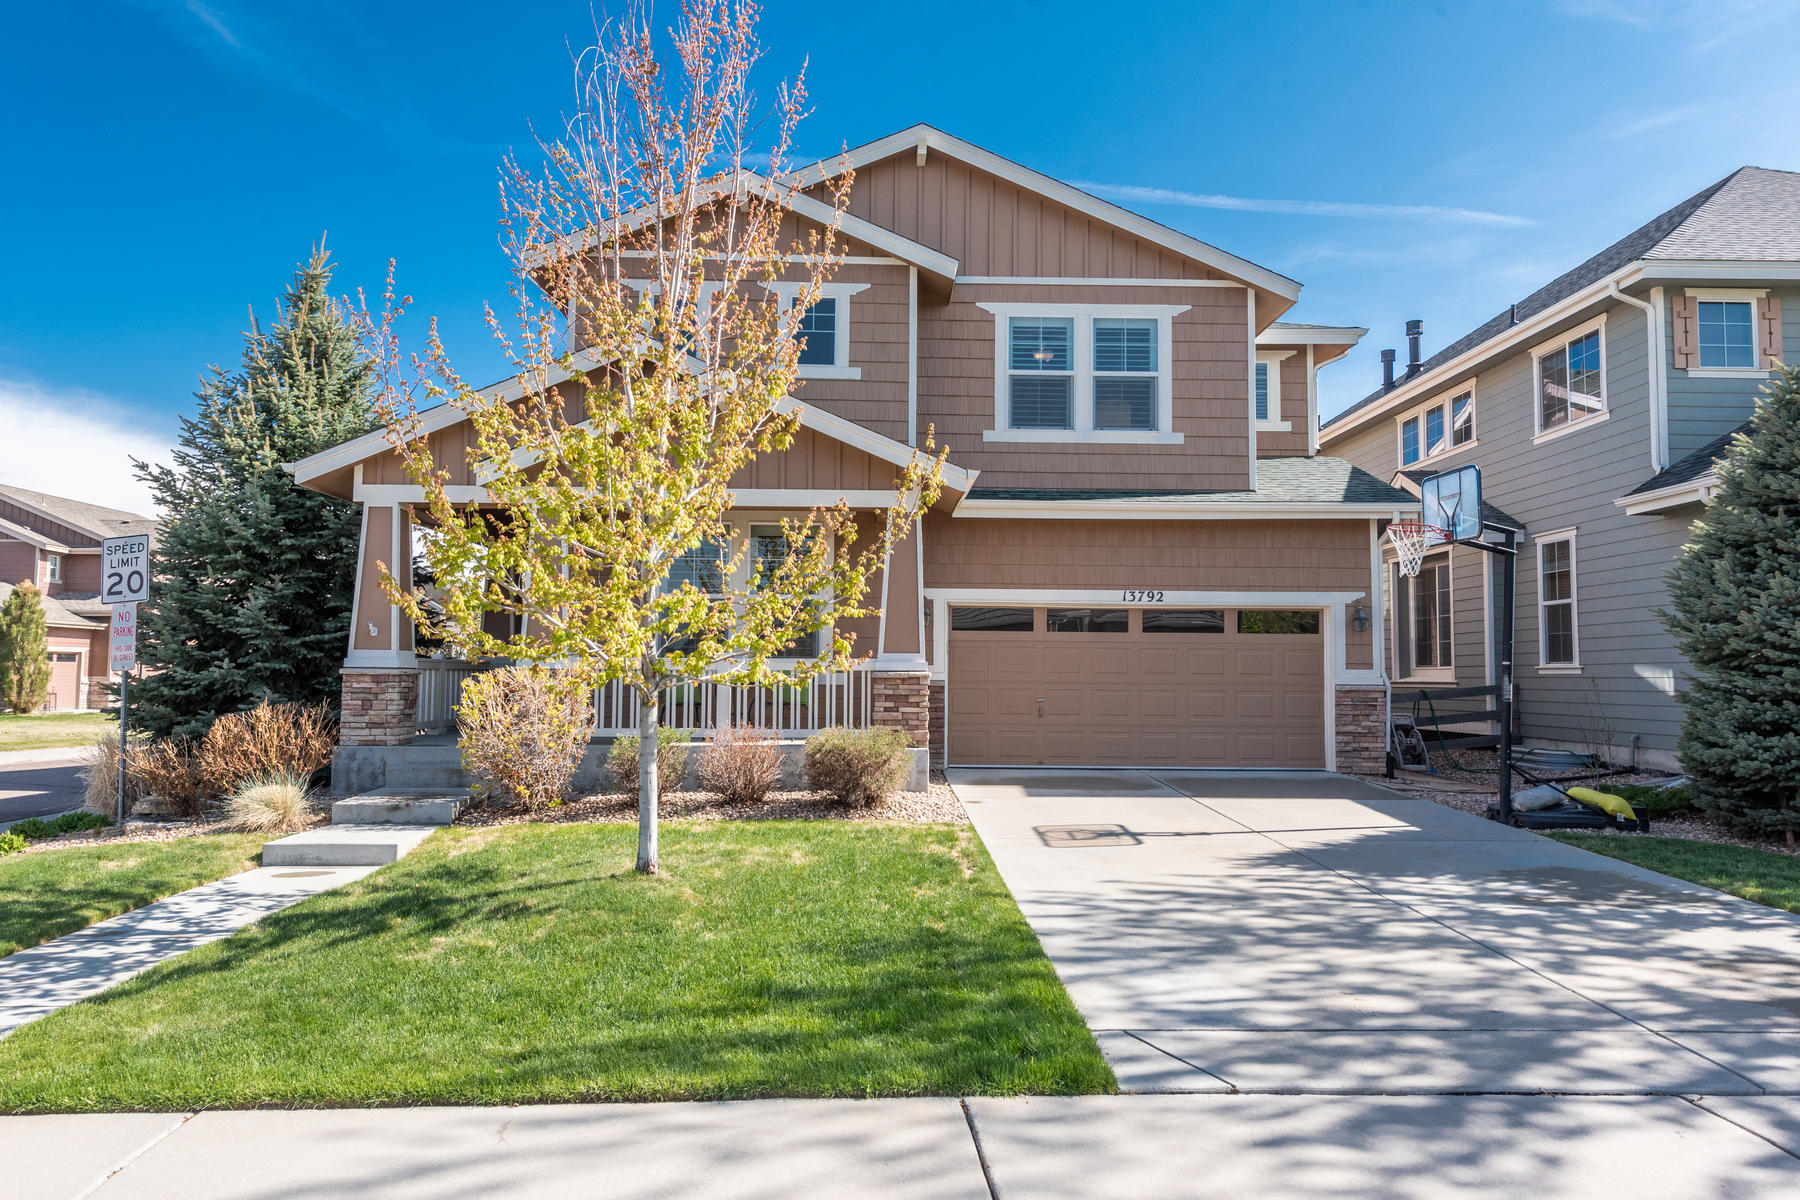 Single Family Homes for Sale at Bright & Open 4 Bedroom in Cherry Creek School District 13792 E Caley Avenue Centennial, Colorado 80111 United States